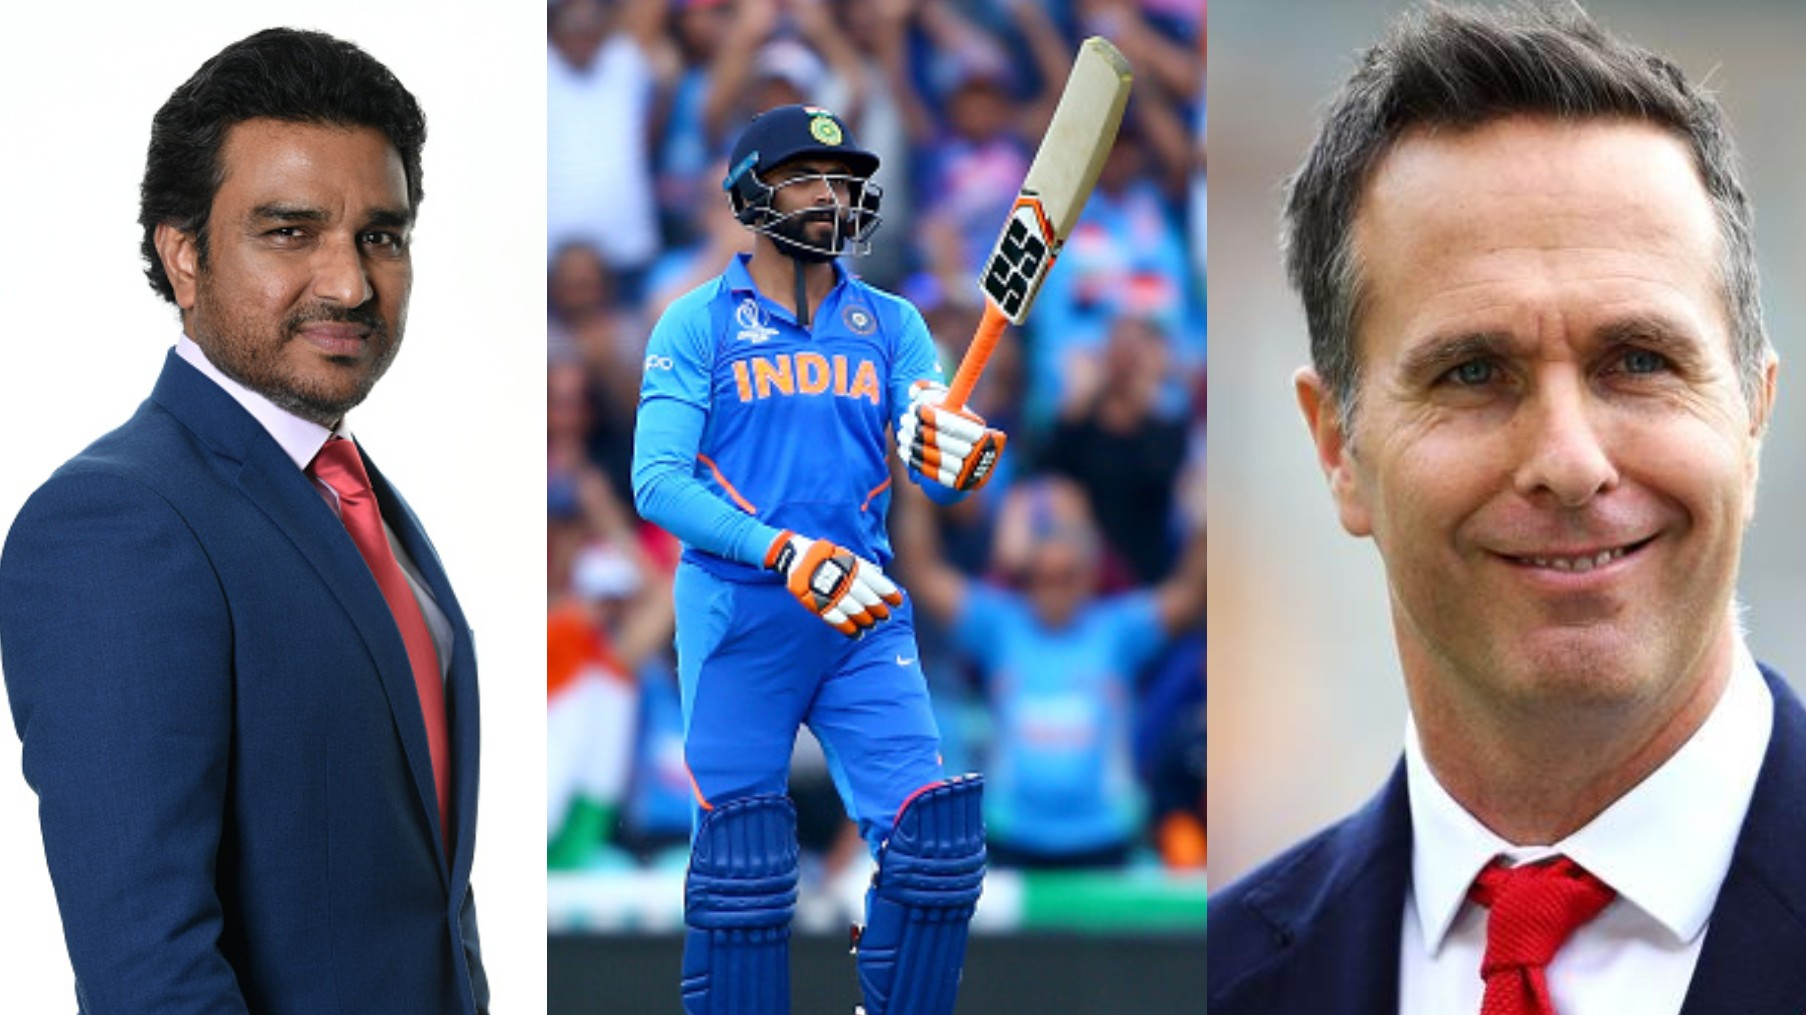 CWC 2019: Michael Vaughan takes a dig at Manjrekar after he selects Jadeja in his Indian team for the semis